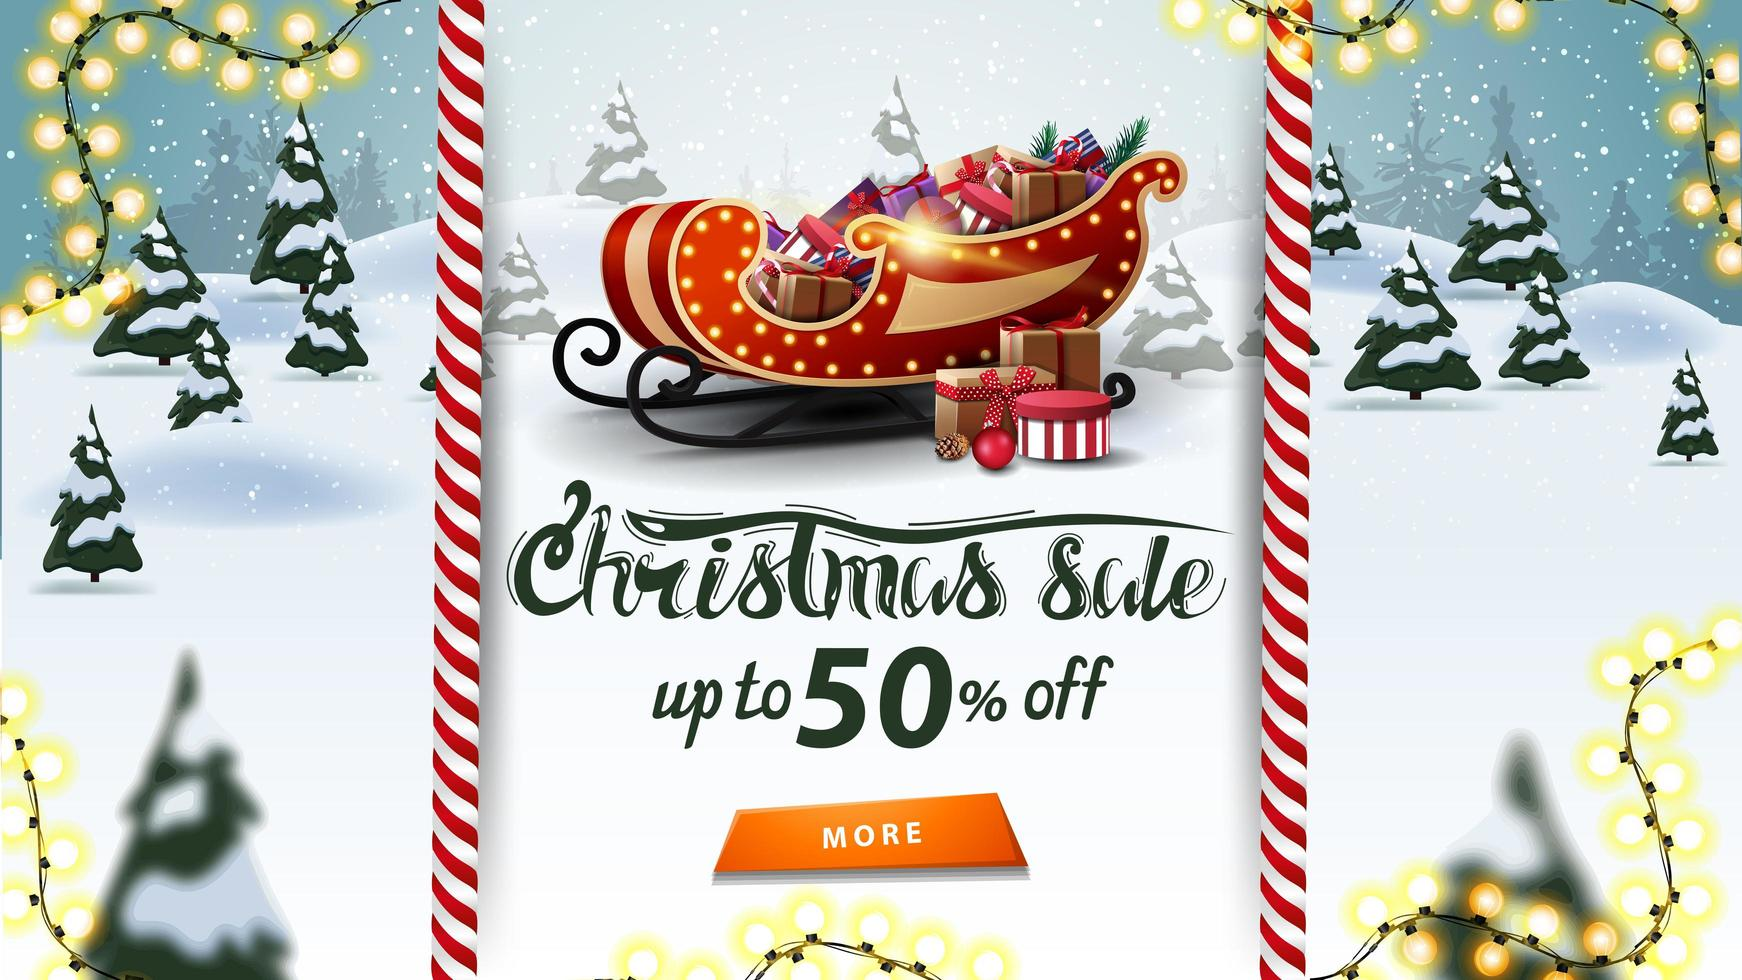 Christmas sale, up to 50 off, beautiful discount banner with Santa Sleigh with presents and cartoon winter landscape on background vector